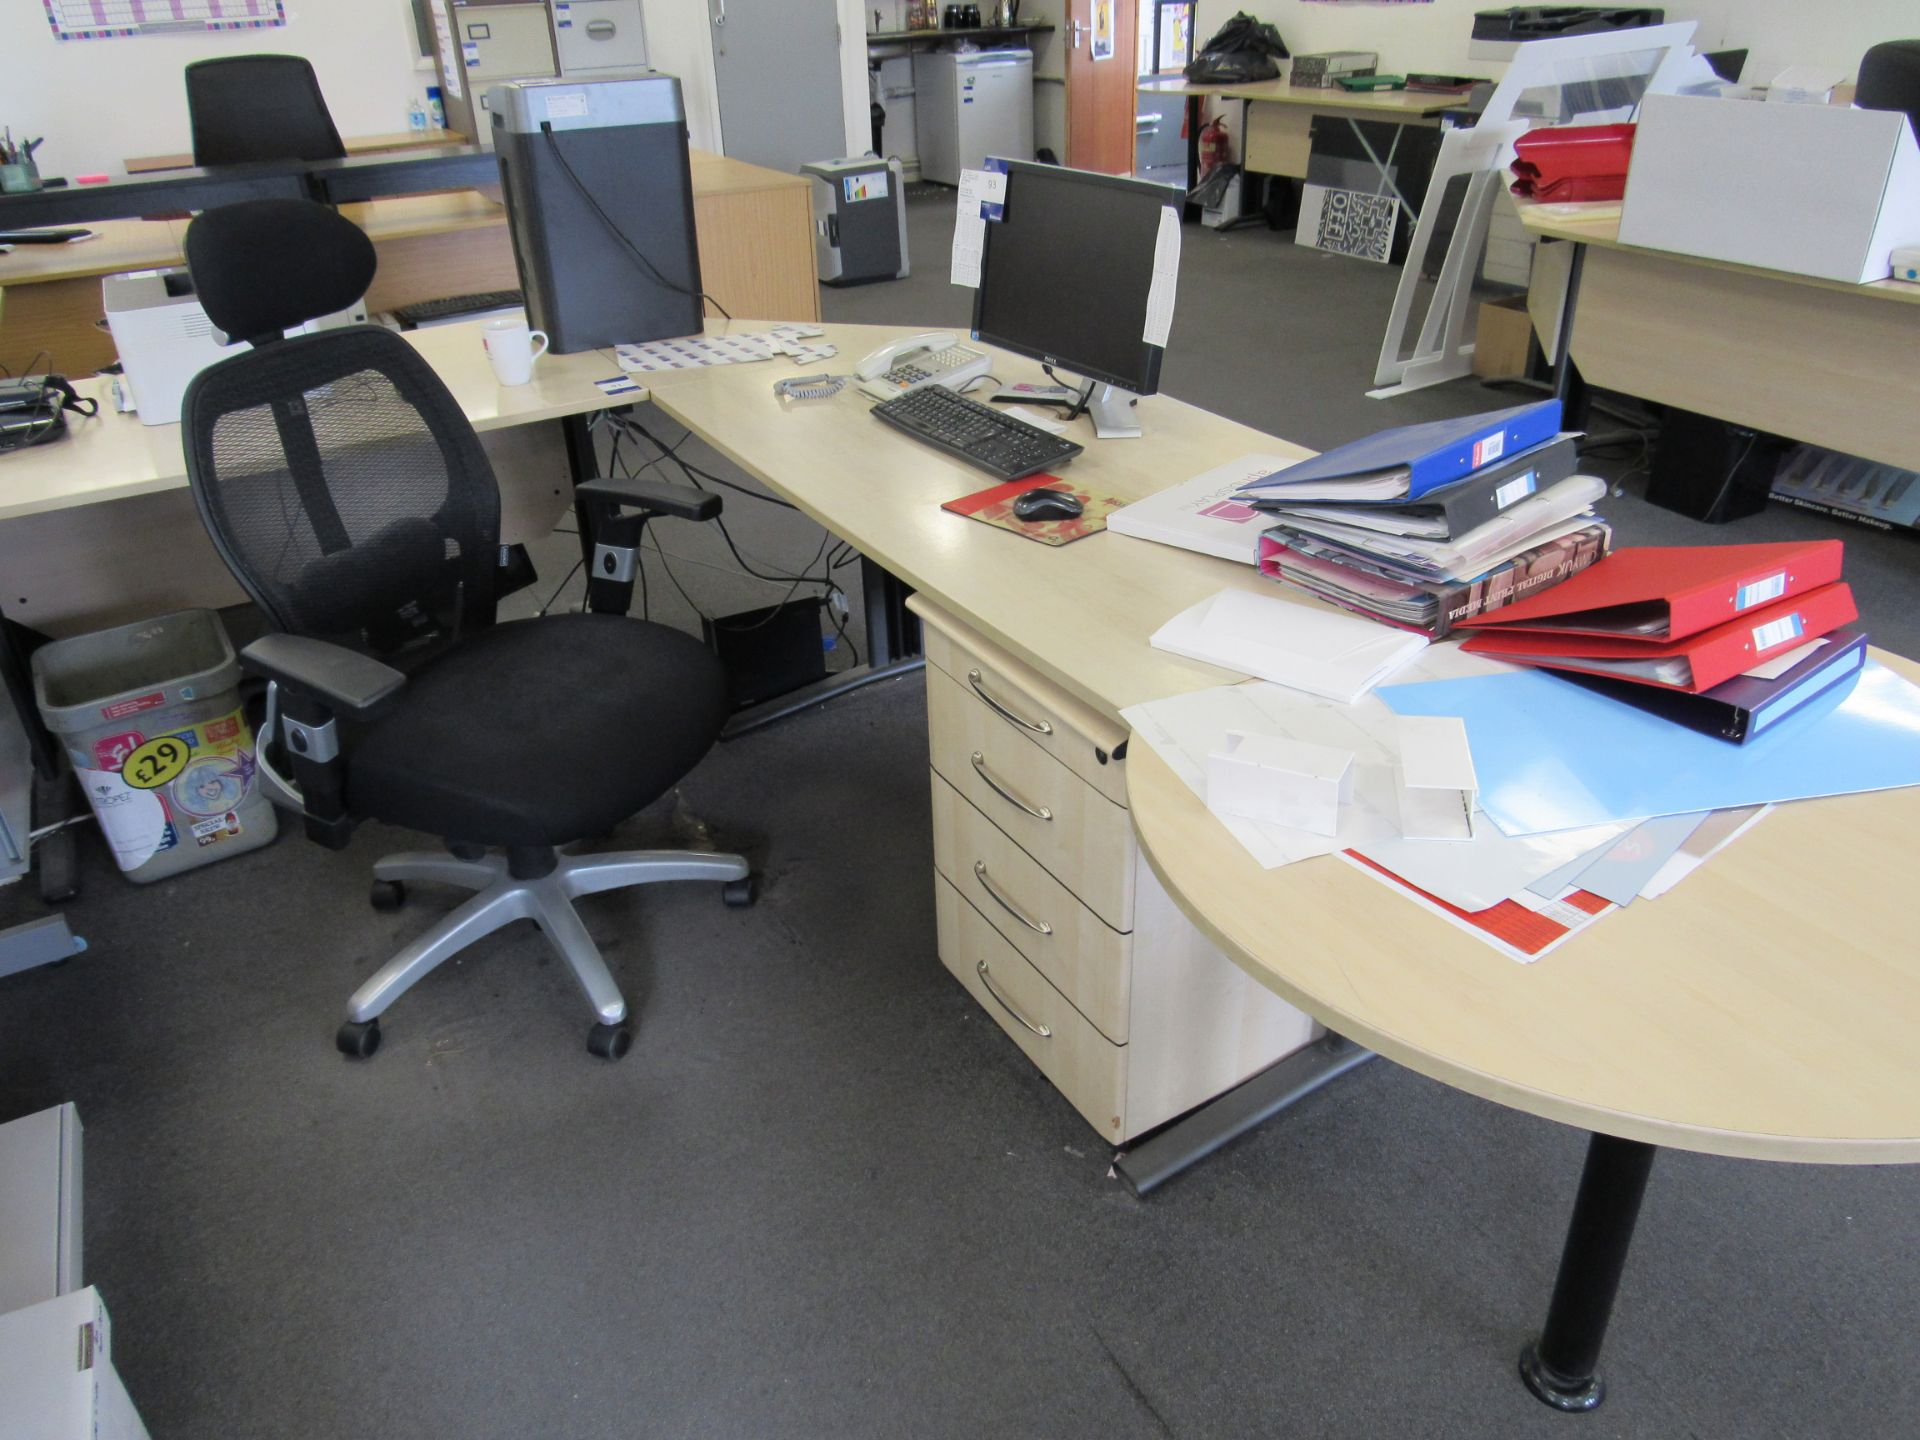 Single person 2 section workstation with operator's chair, to first floor office (Computers not